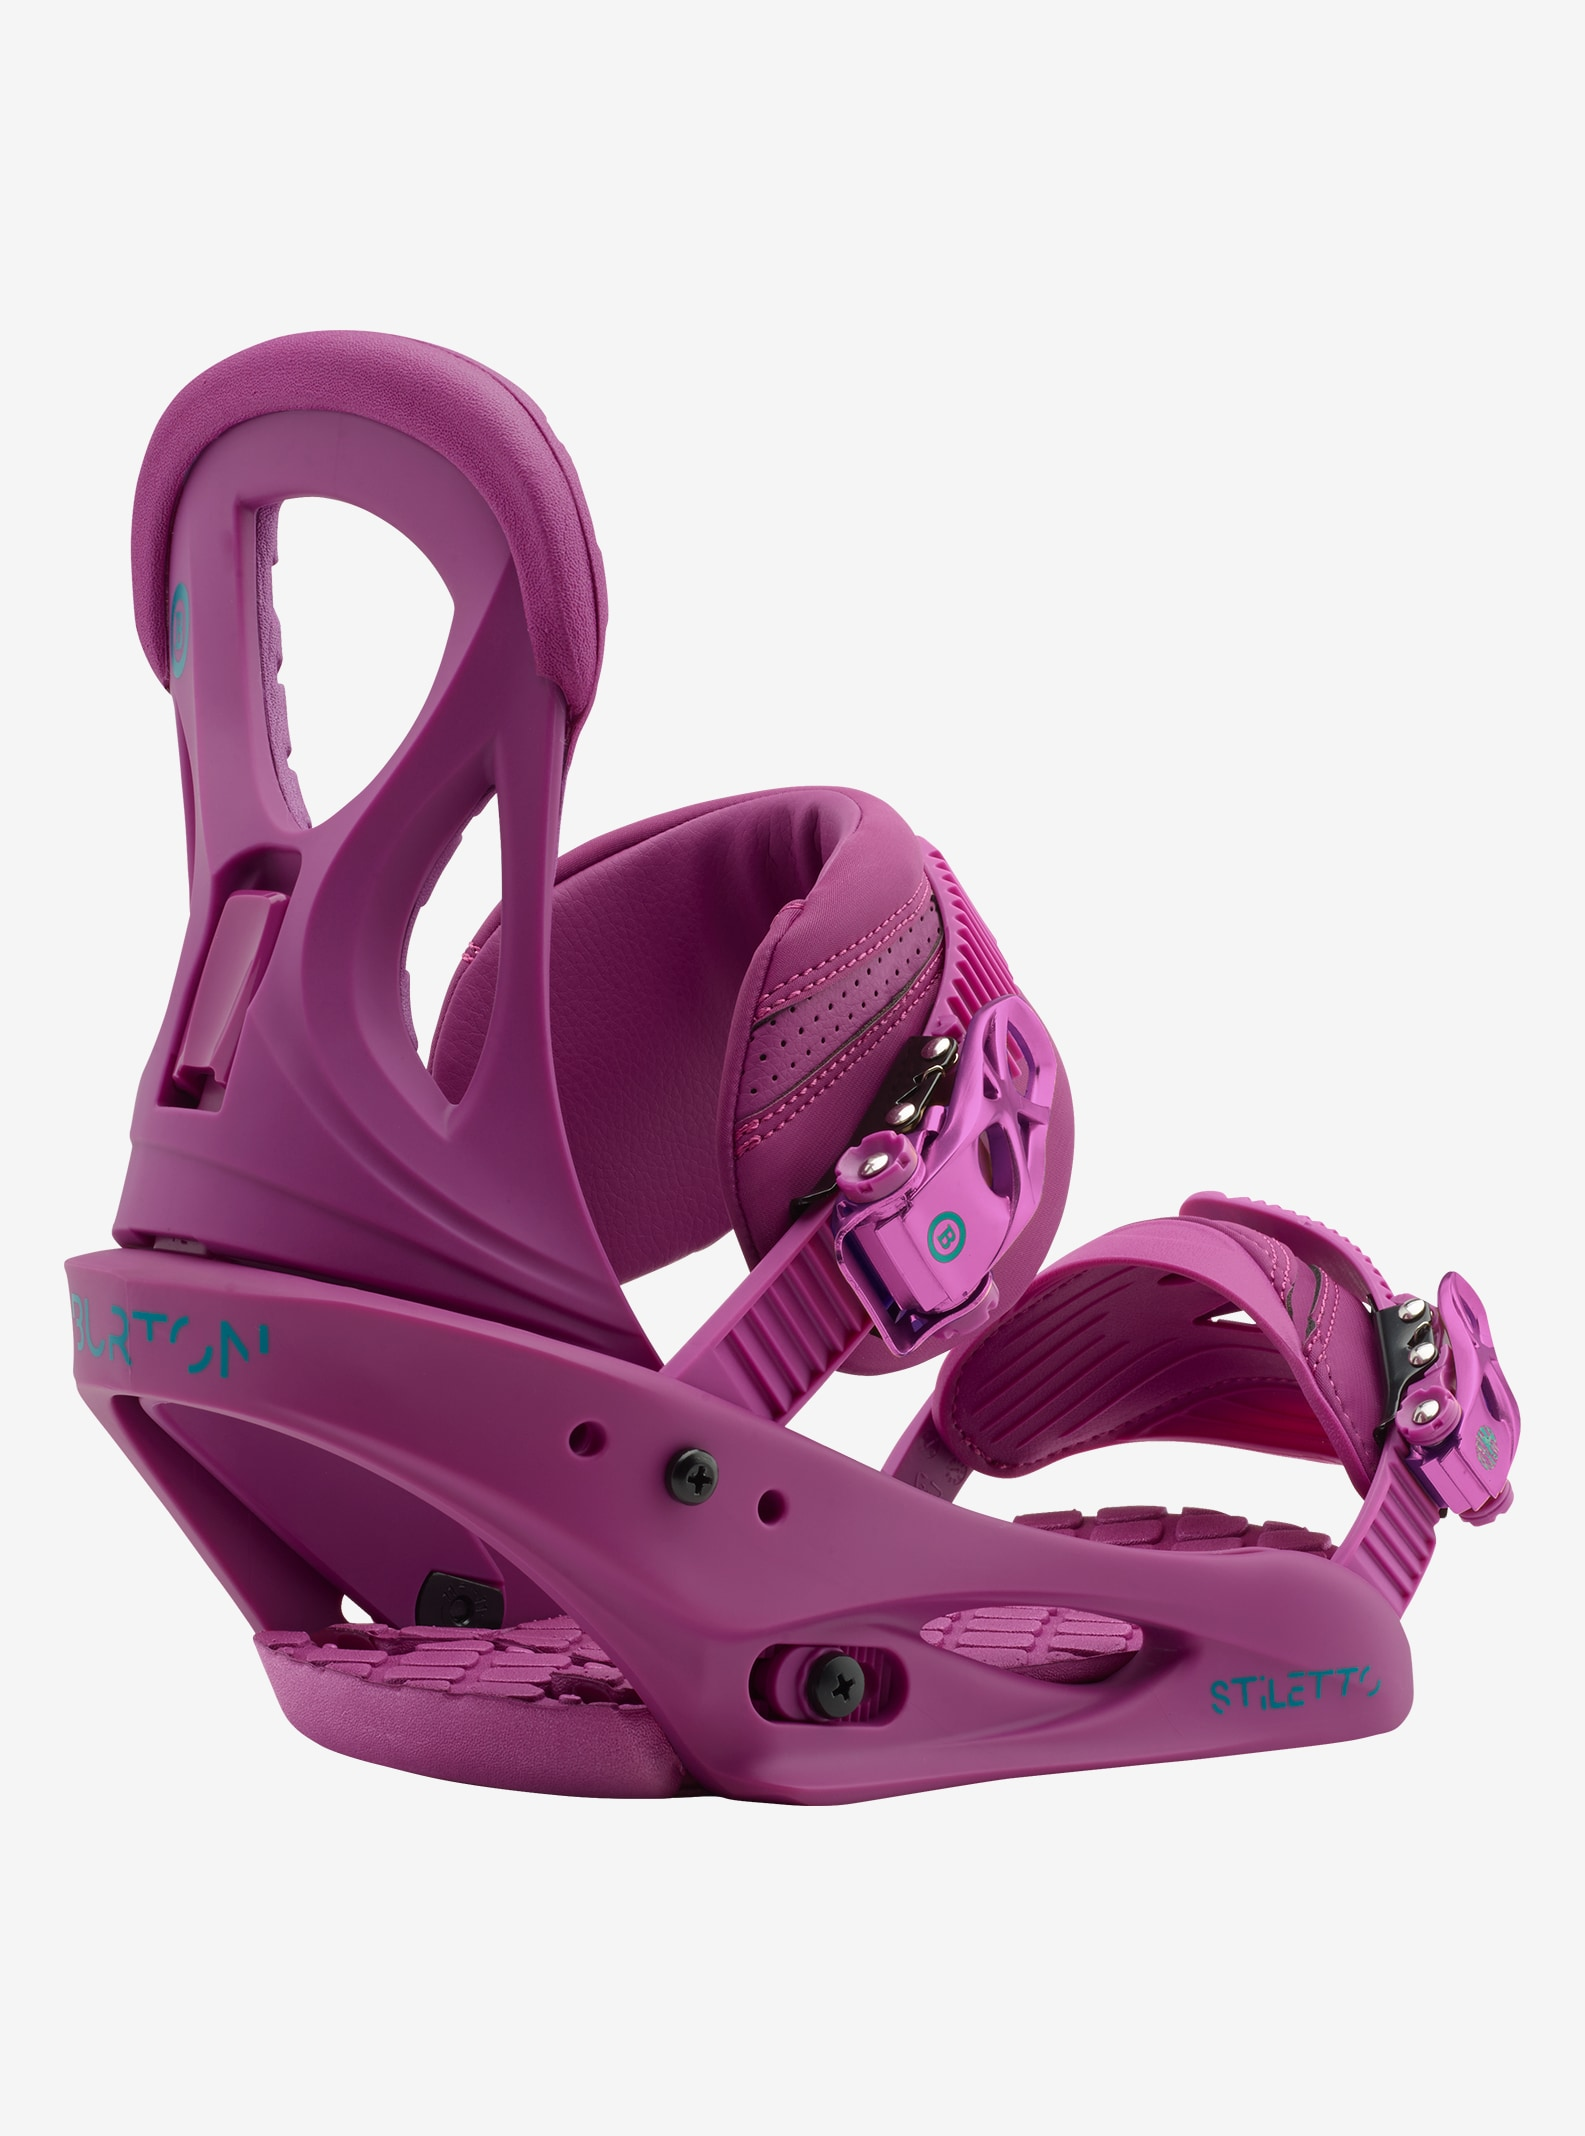 Women's Burton Stiletto Snowboard Binding shown in Hot Purple